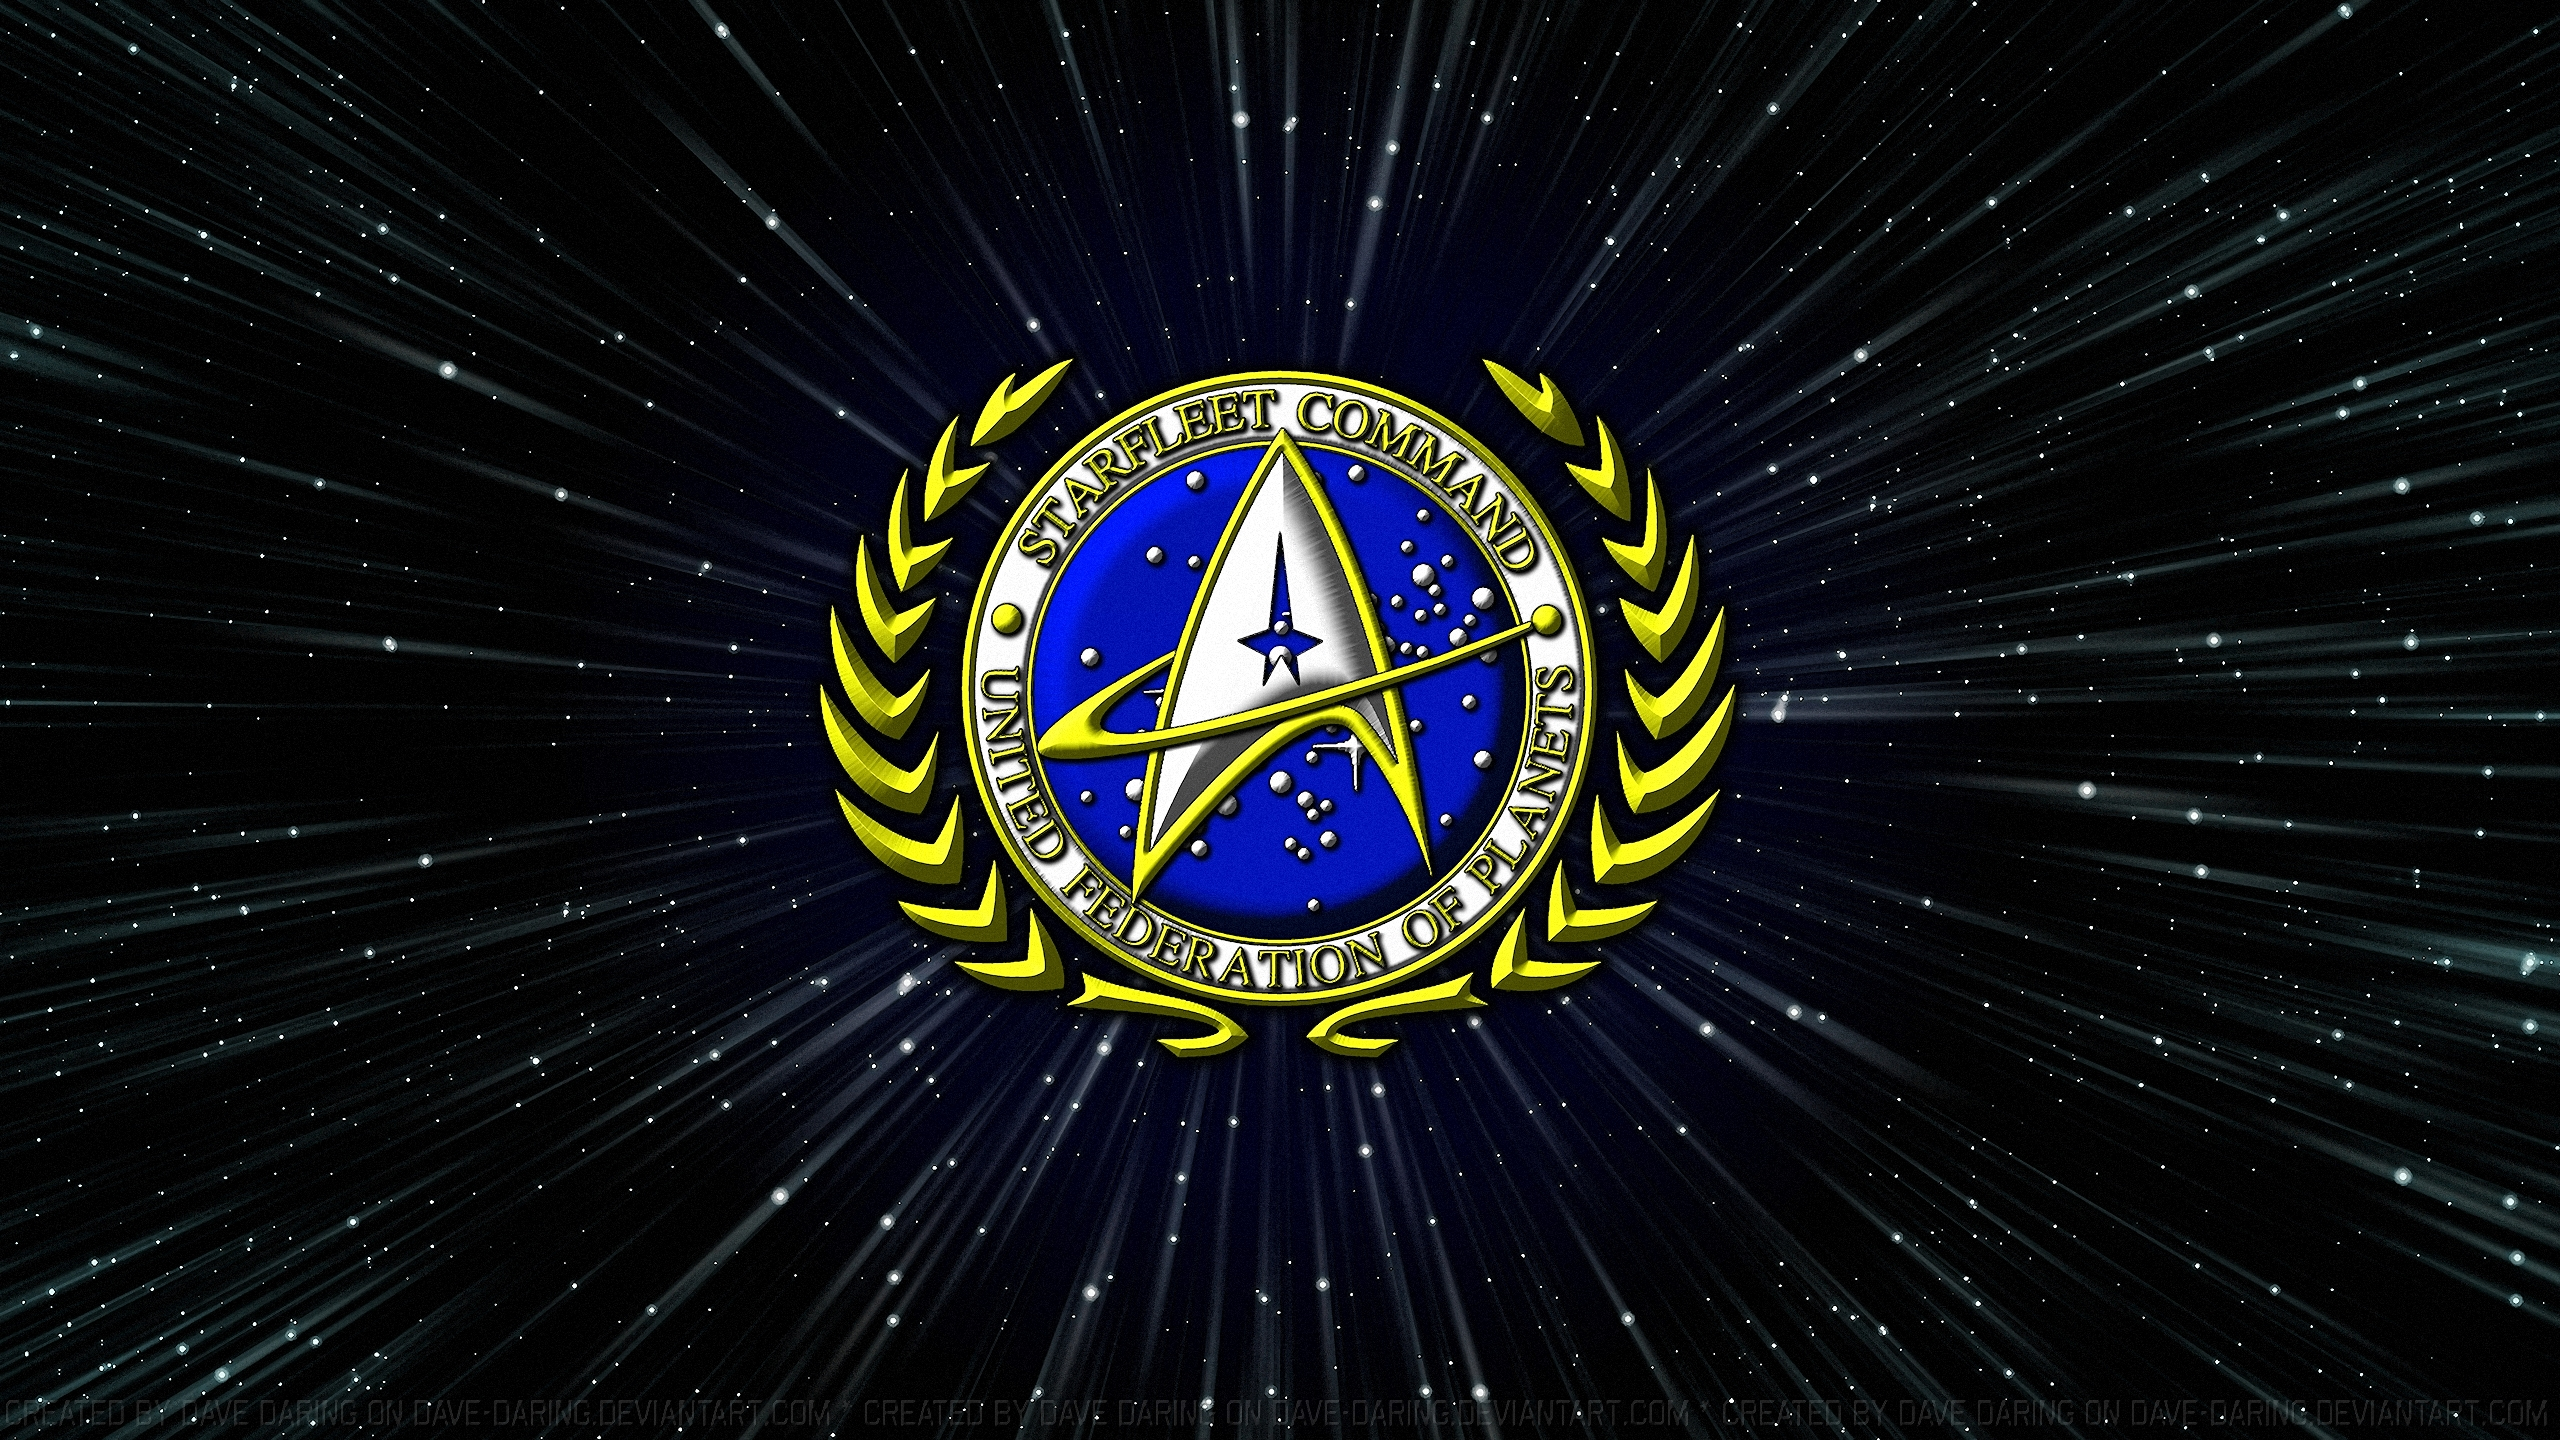 Starfleet Command Great Seal by Dave Daring 2560x1440